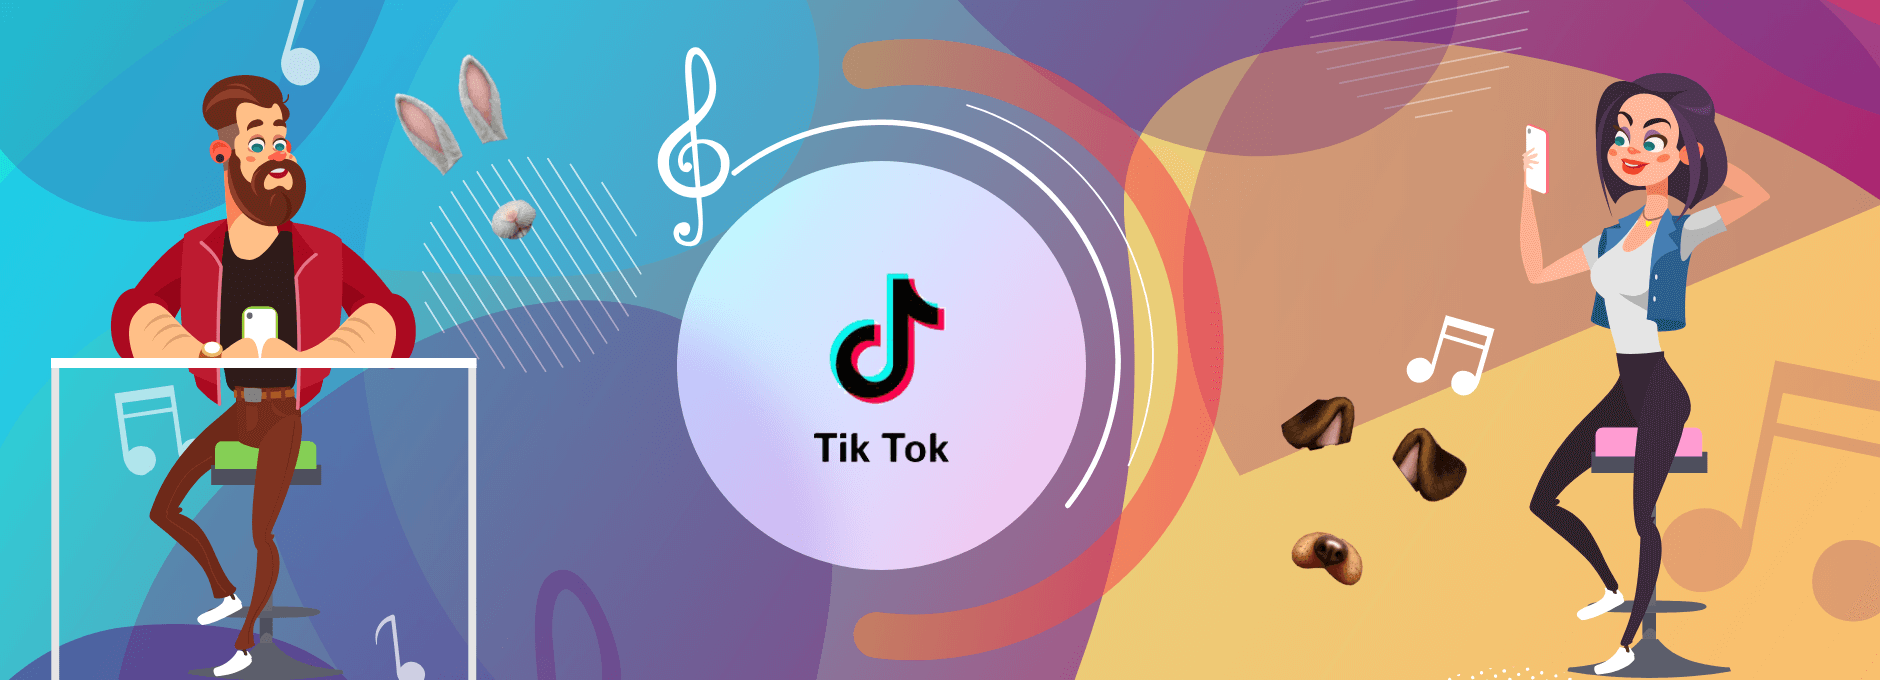 How to Make an App like Musical.ly/Tiktok